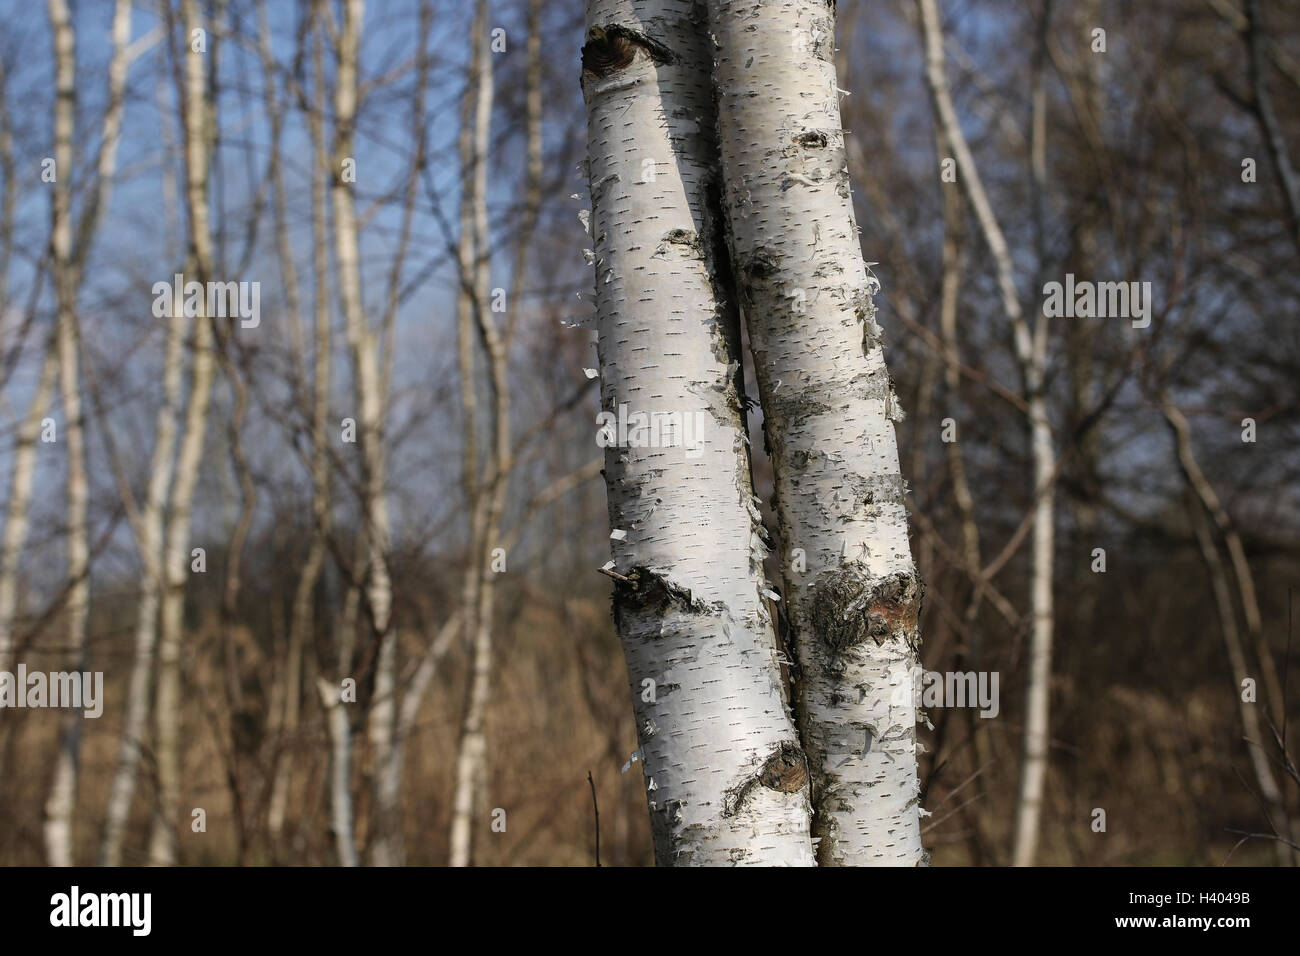 Two birch tree trunks merged together - Stock Image